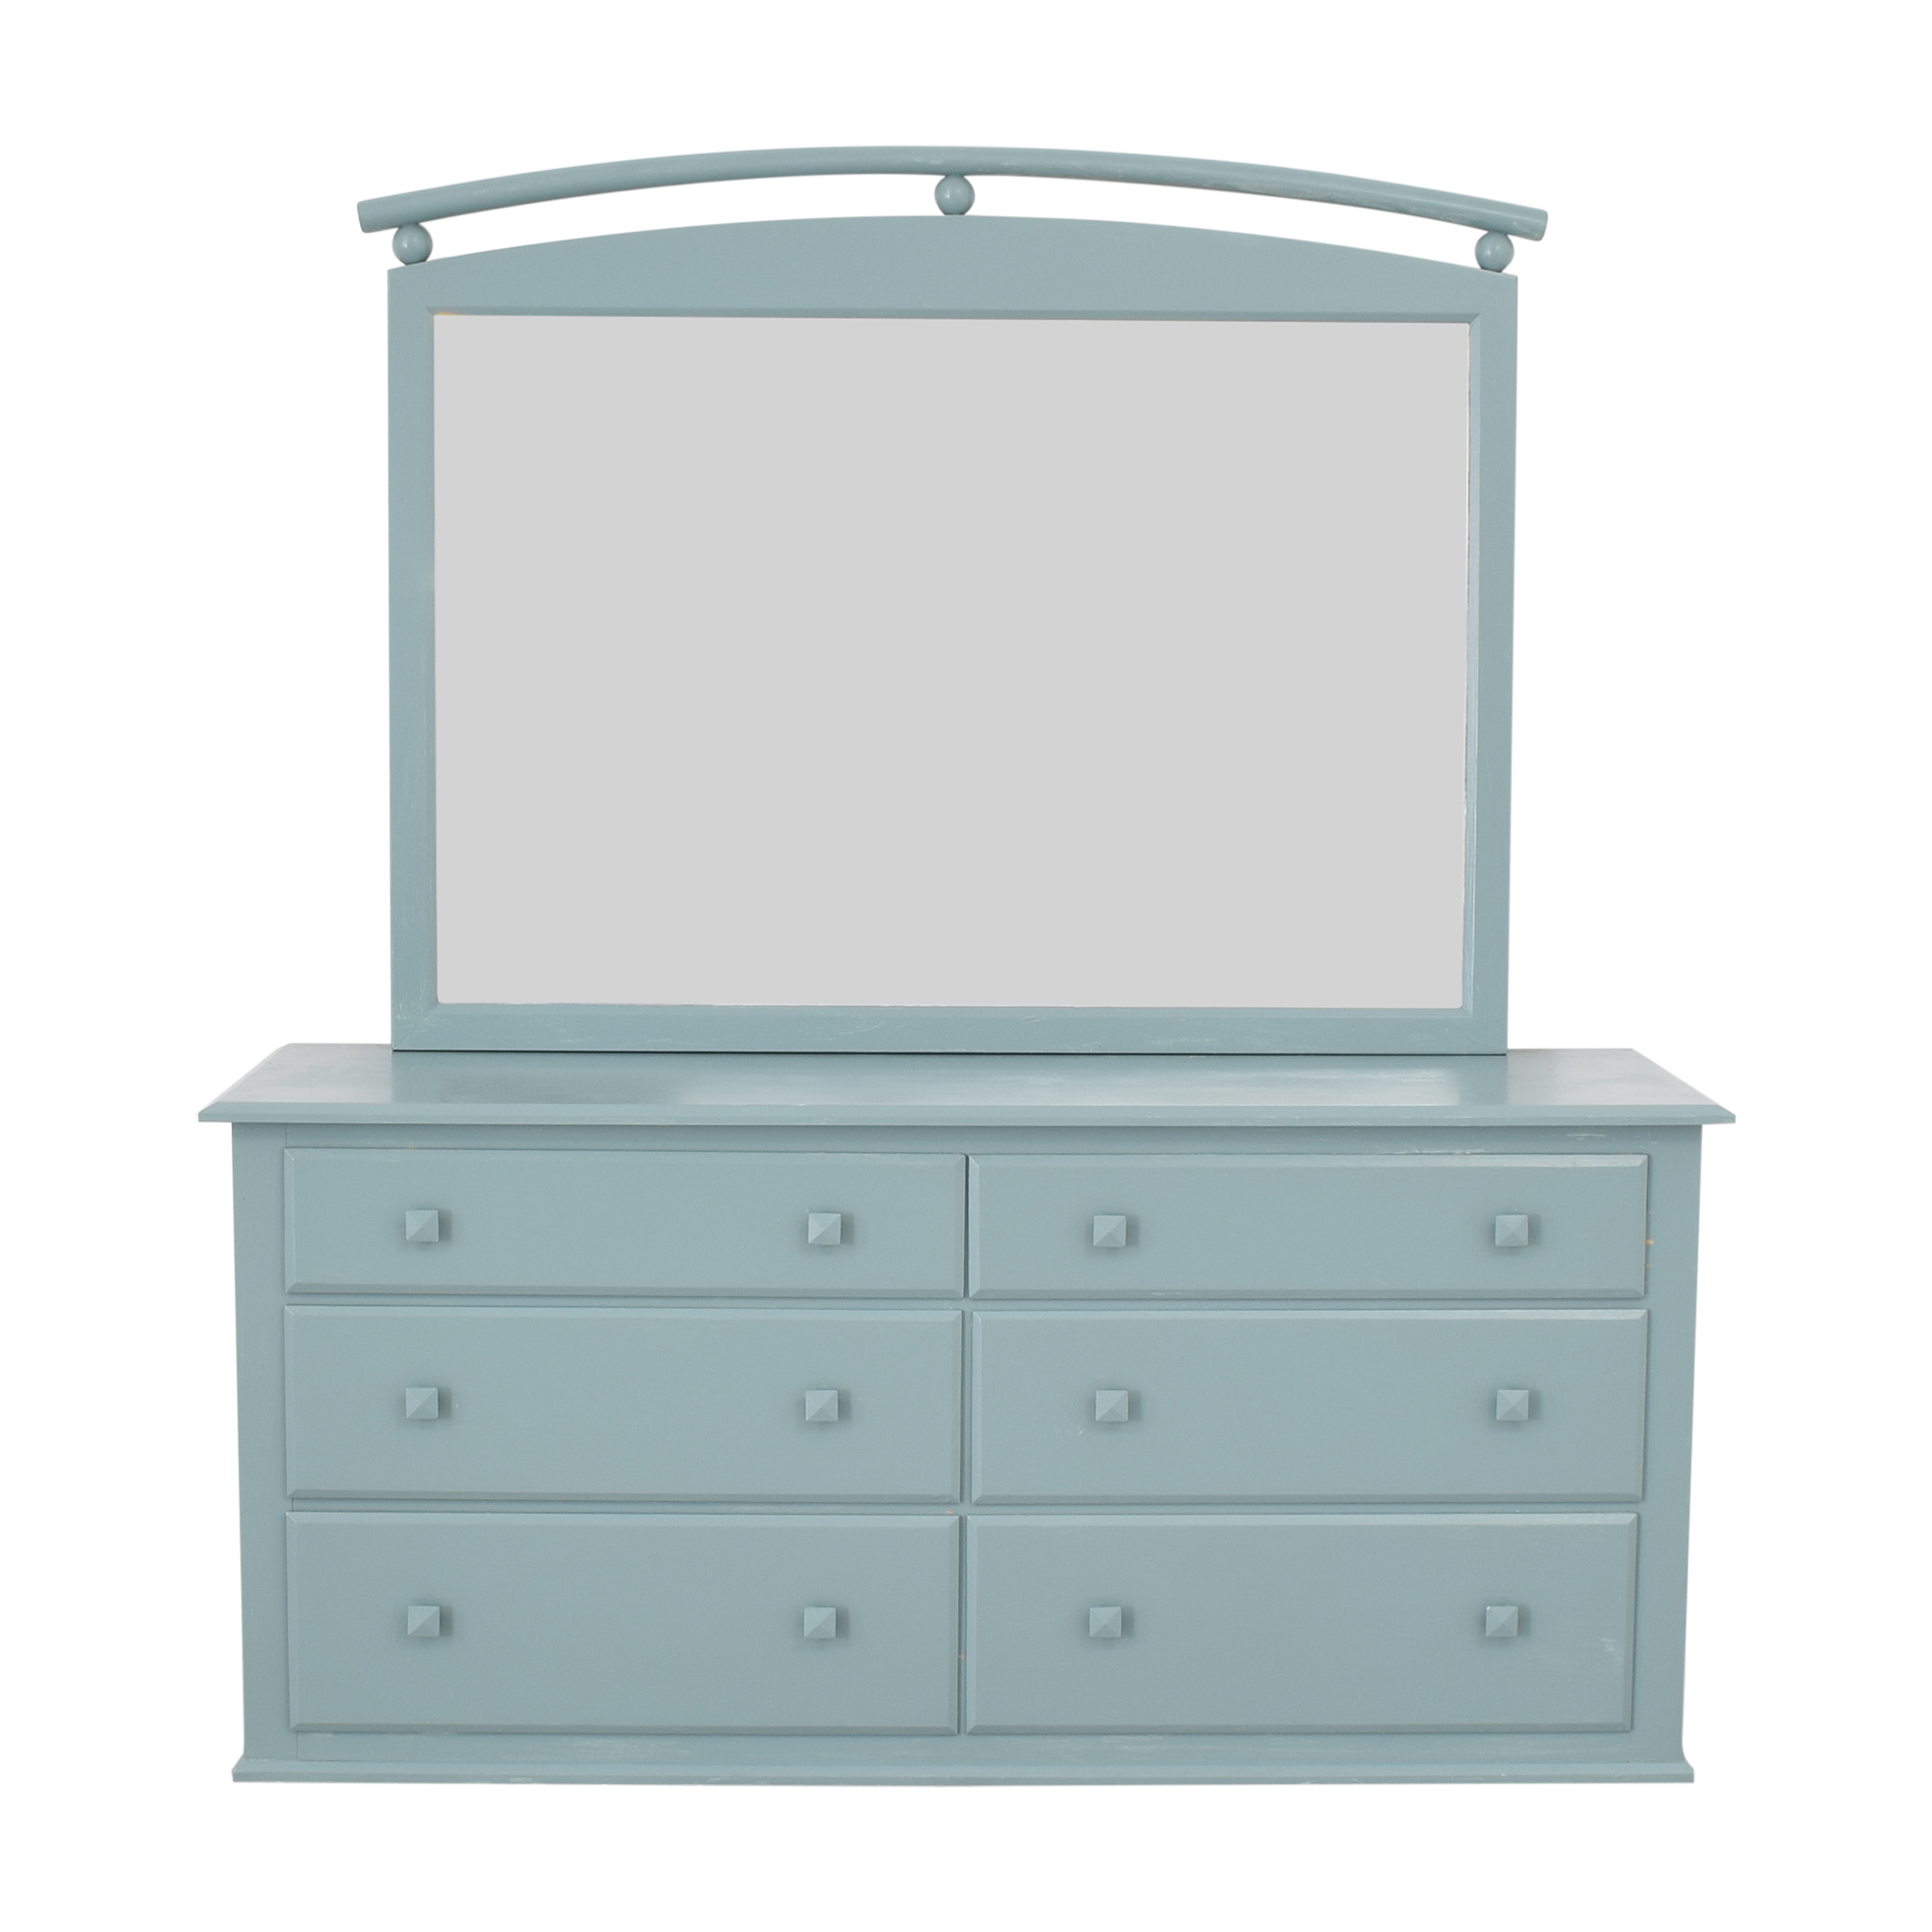 Ethan Allen American Dimensions Dresser with Mirror sale